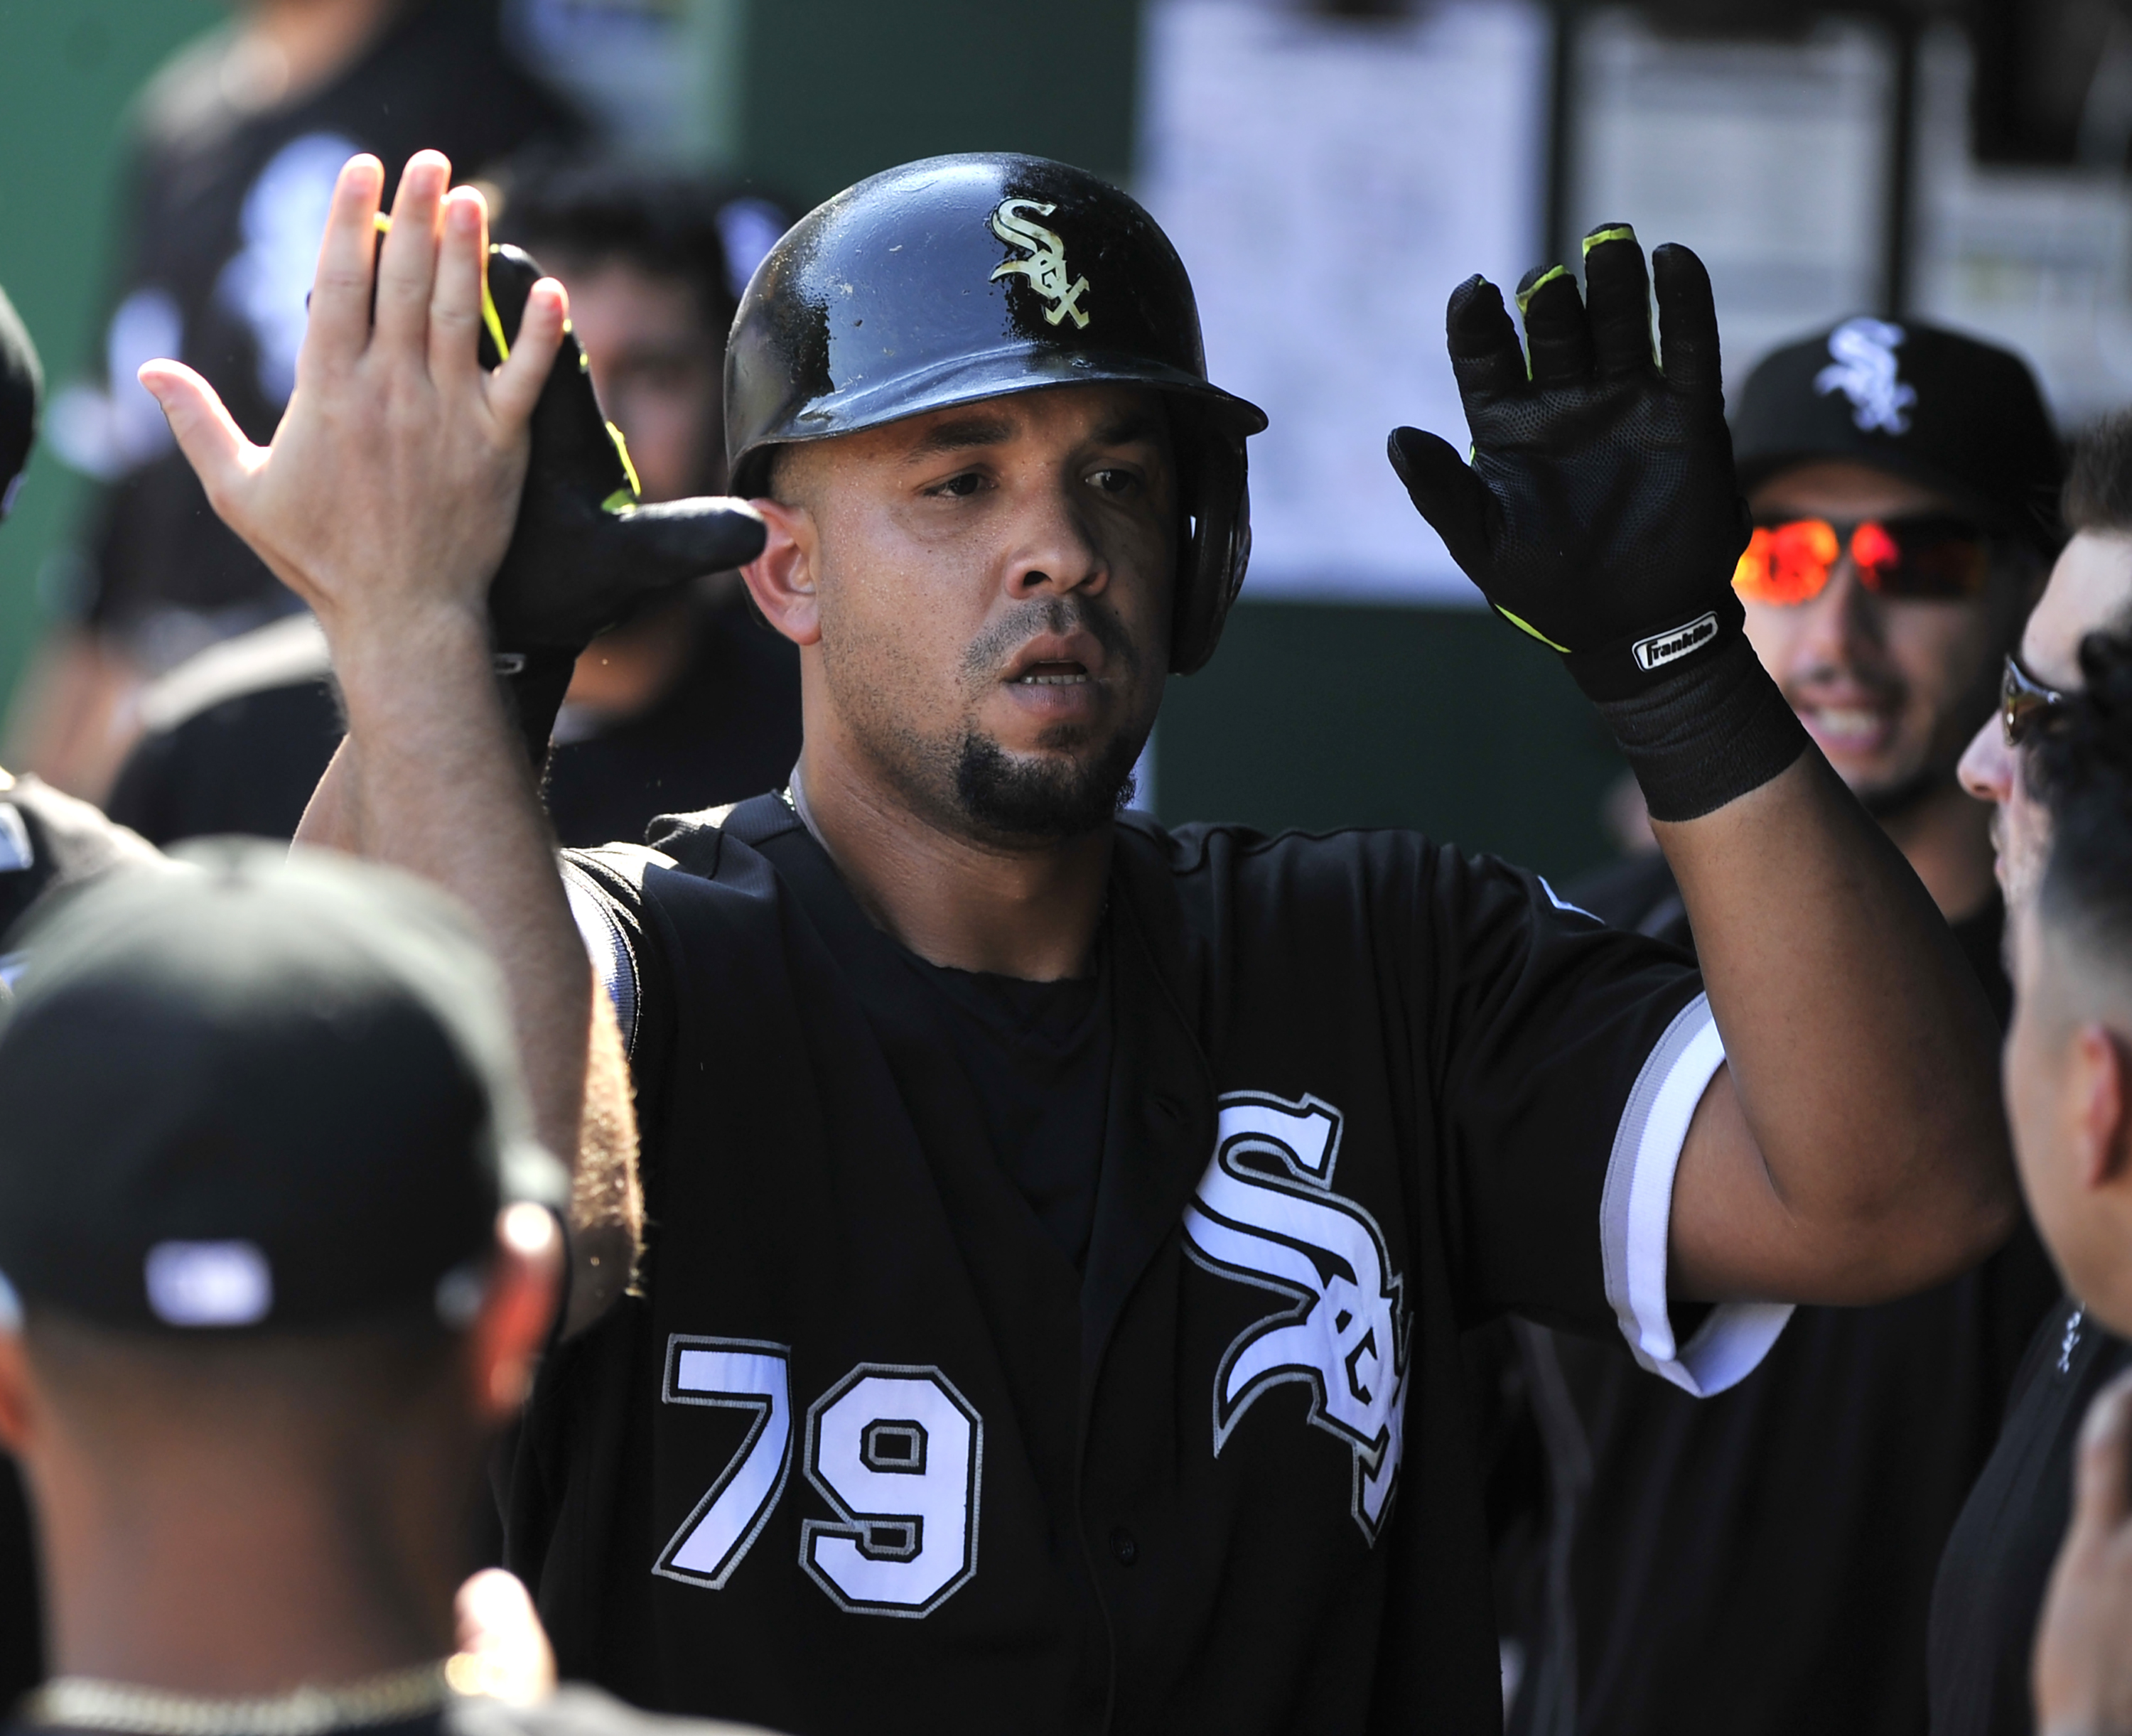 Jose Abreu is a Perfect Example Why Traditional Stats Don't Tell the Whole Story